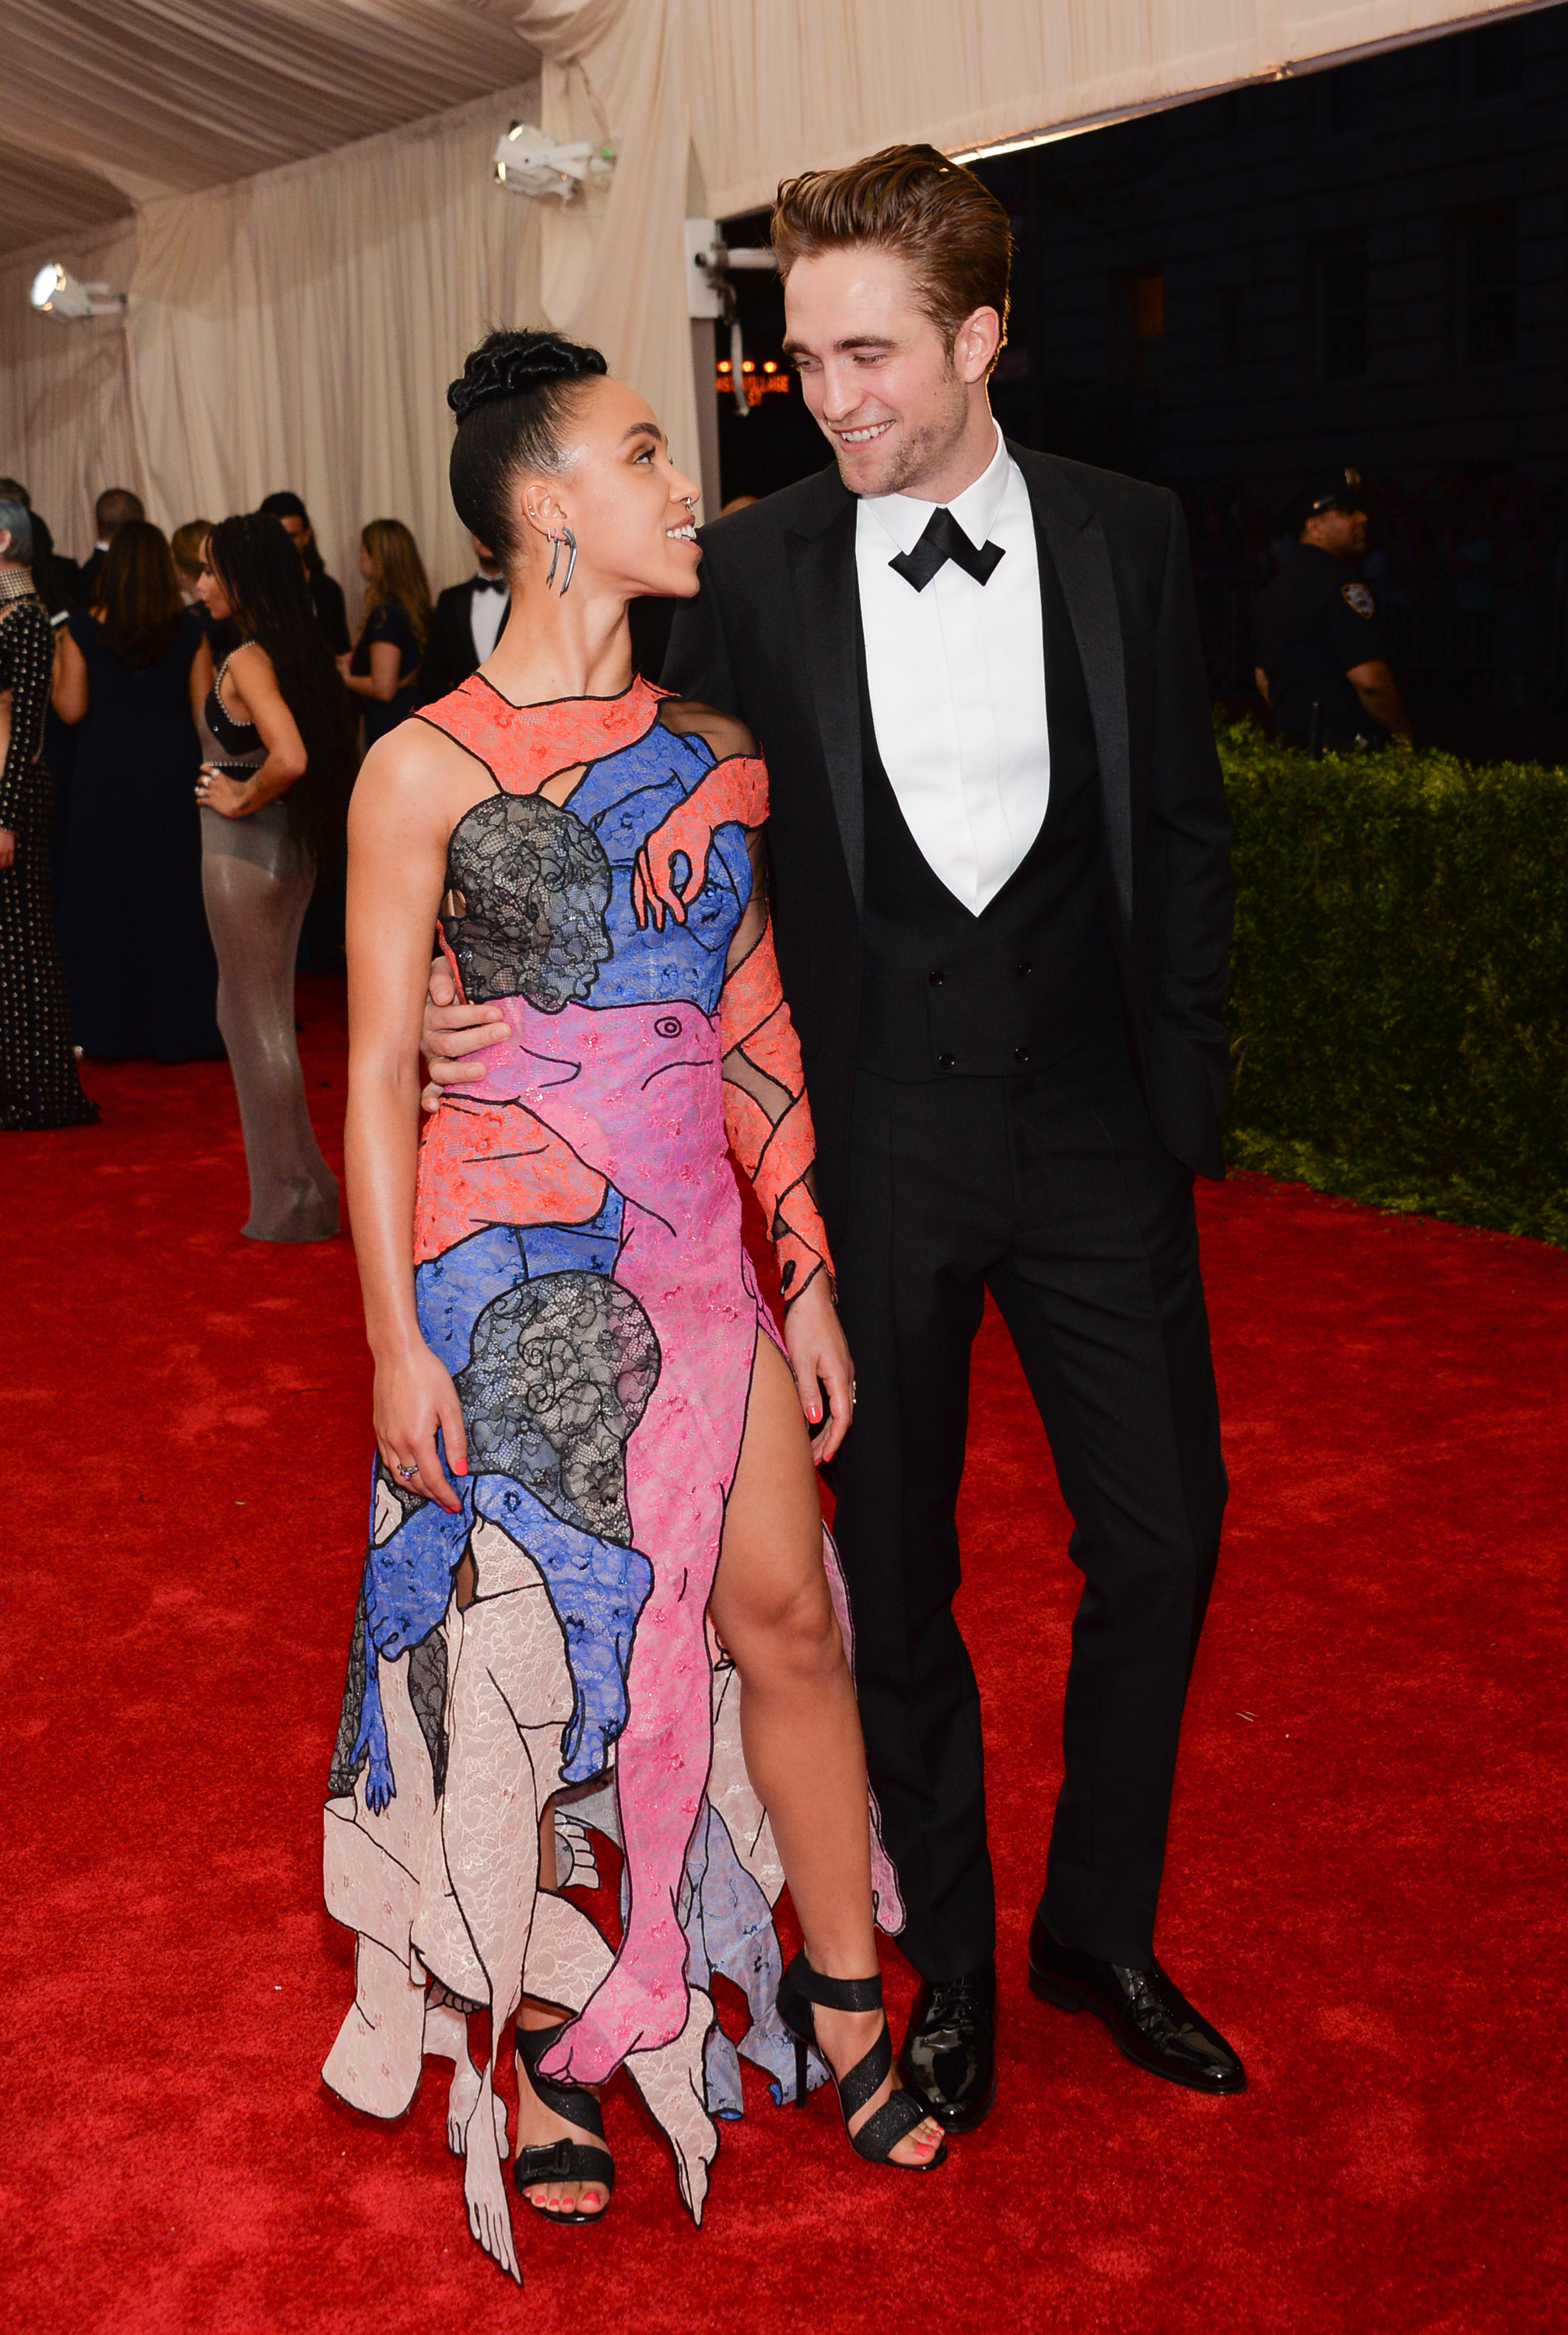 FKA Twigs is in 'an amazing relationship' despite the haters